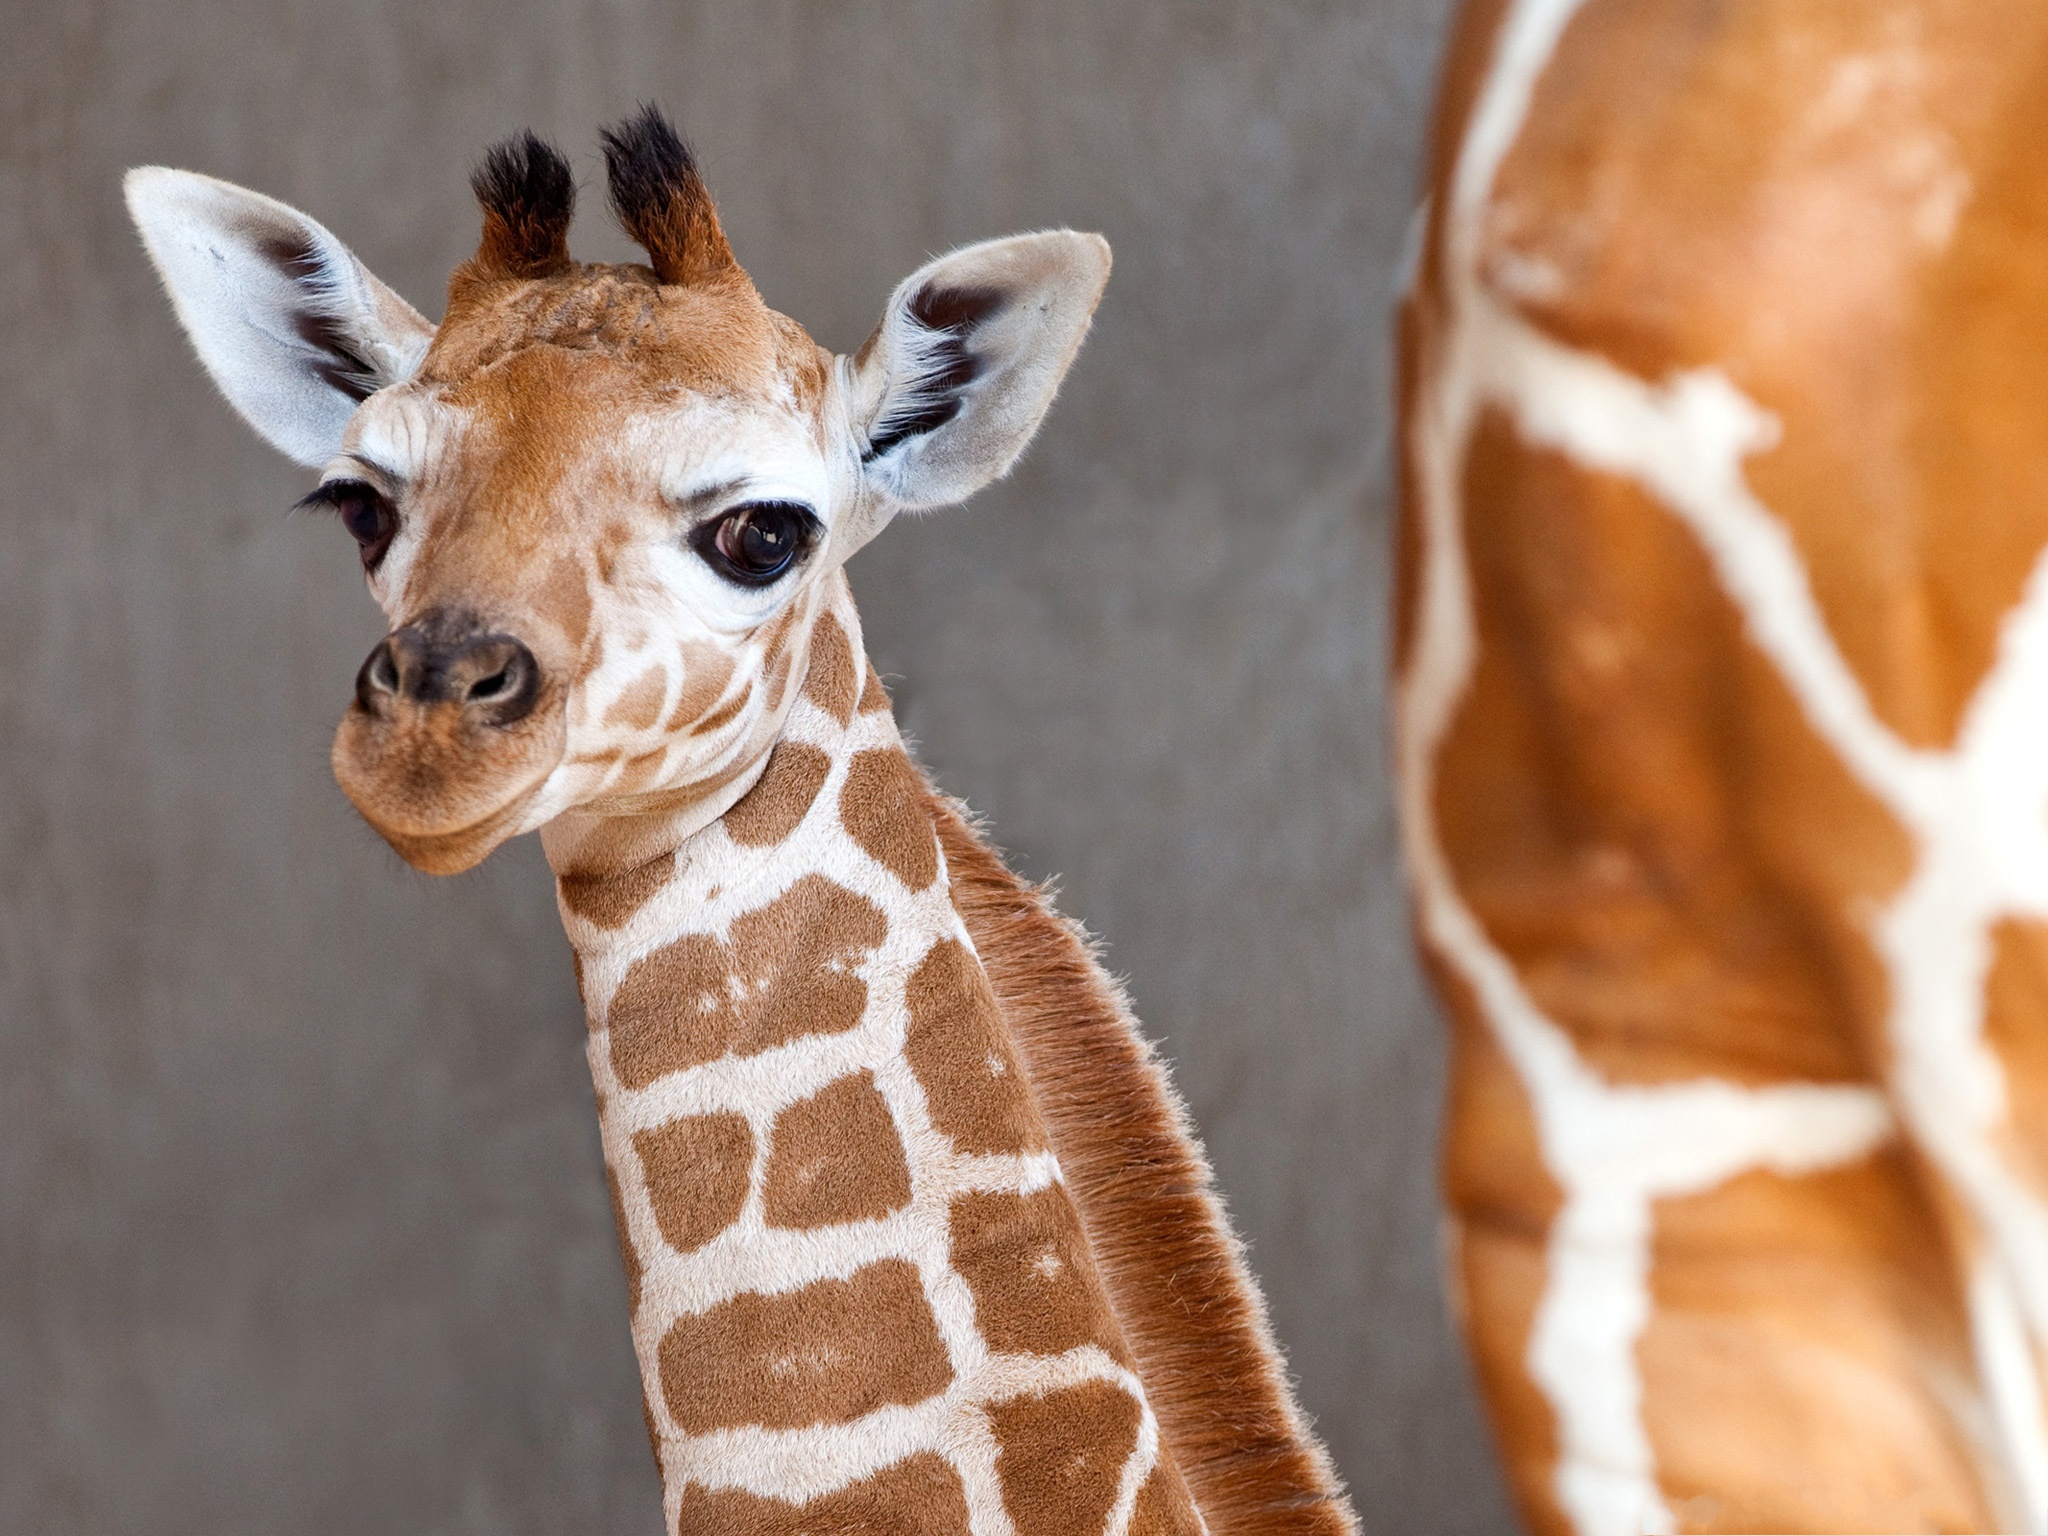 Baby Giraffe Photos, Cute Baby Turning the Head Around, What a Sweetie!--2048X1536 free wallpaper download